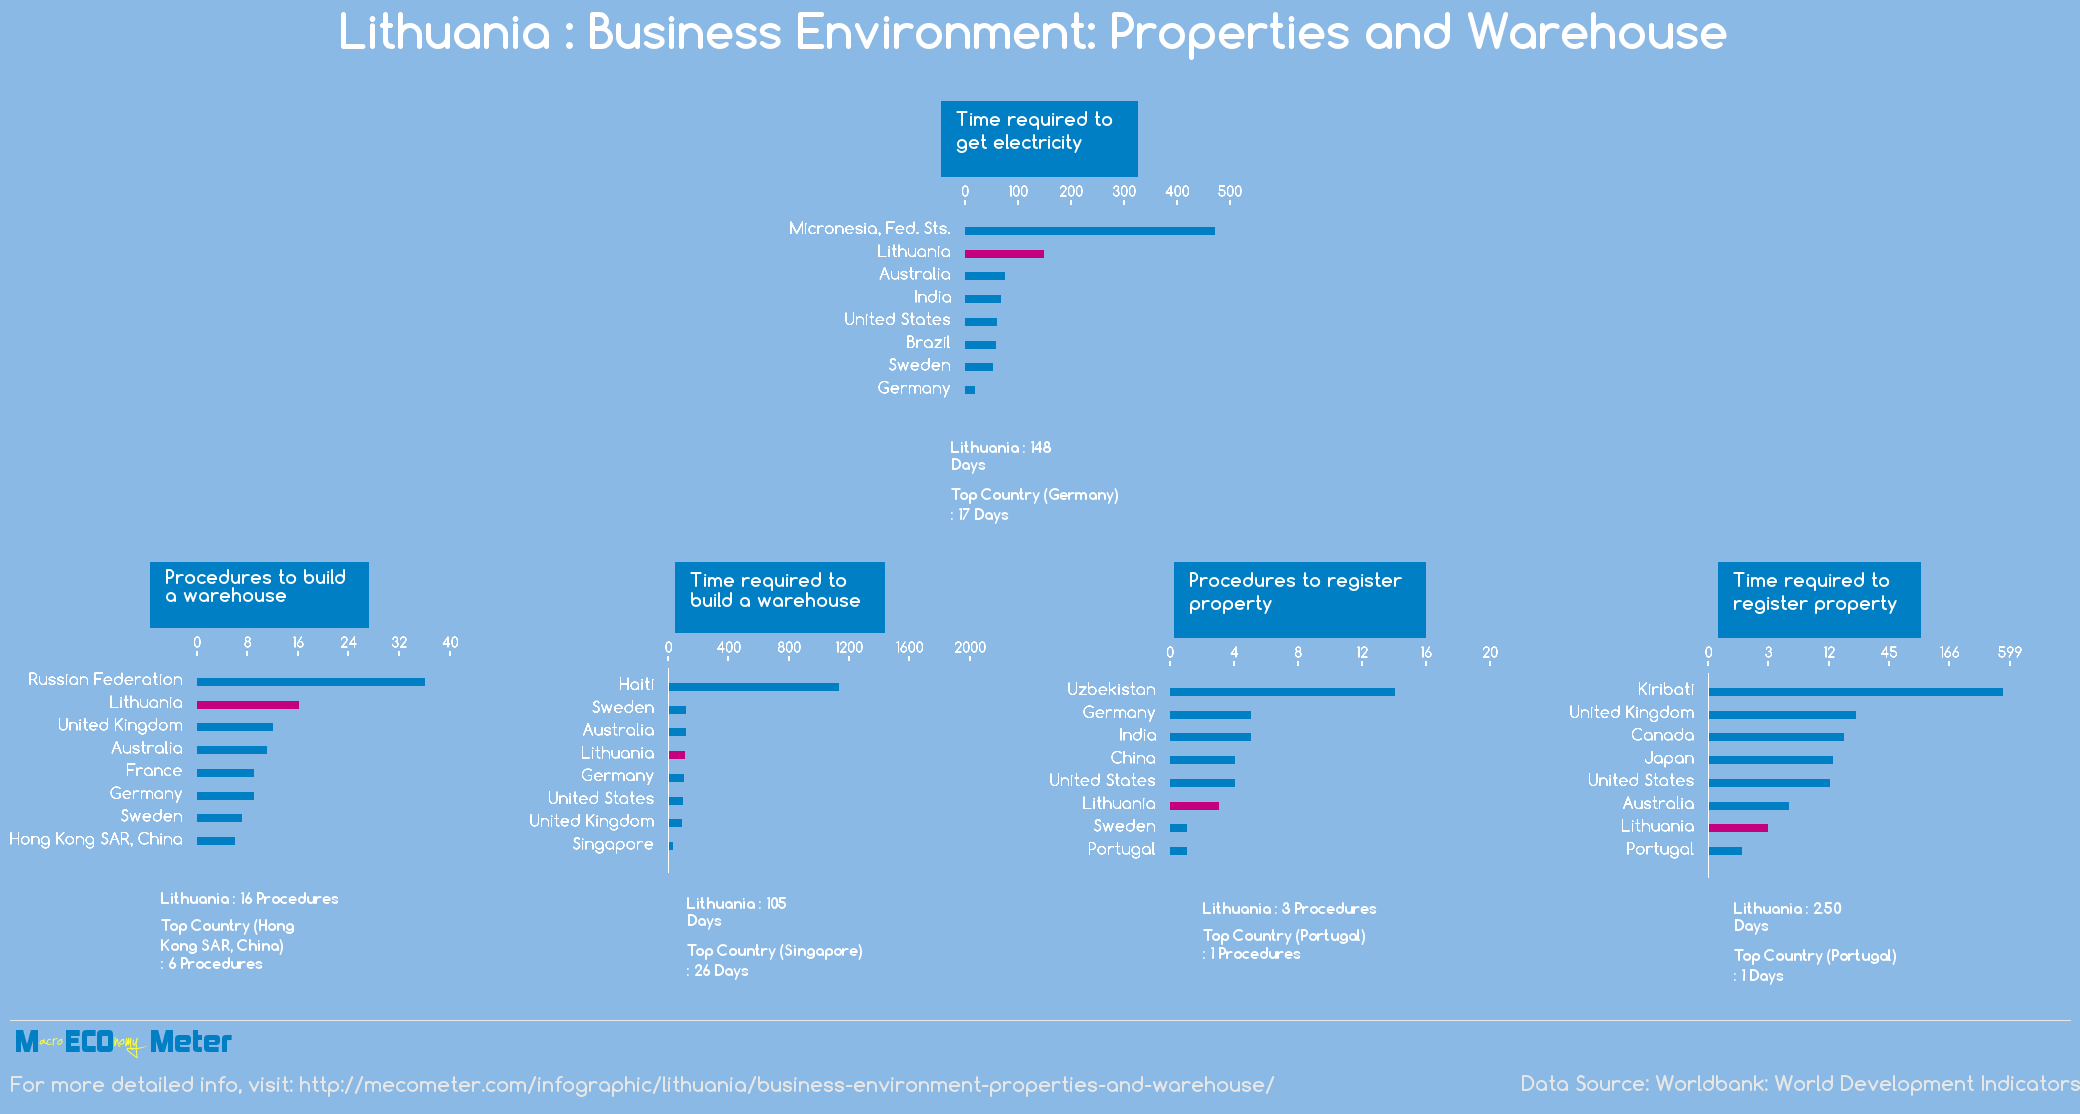 Lithuania : Business Environment: Properties and Warehouse